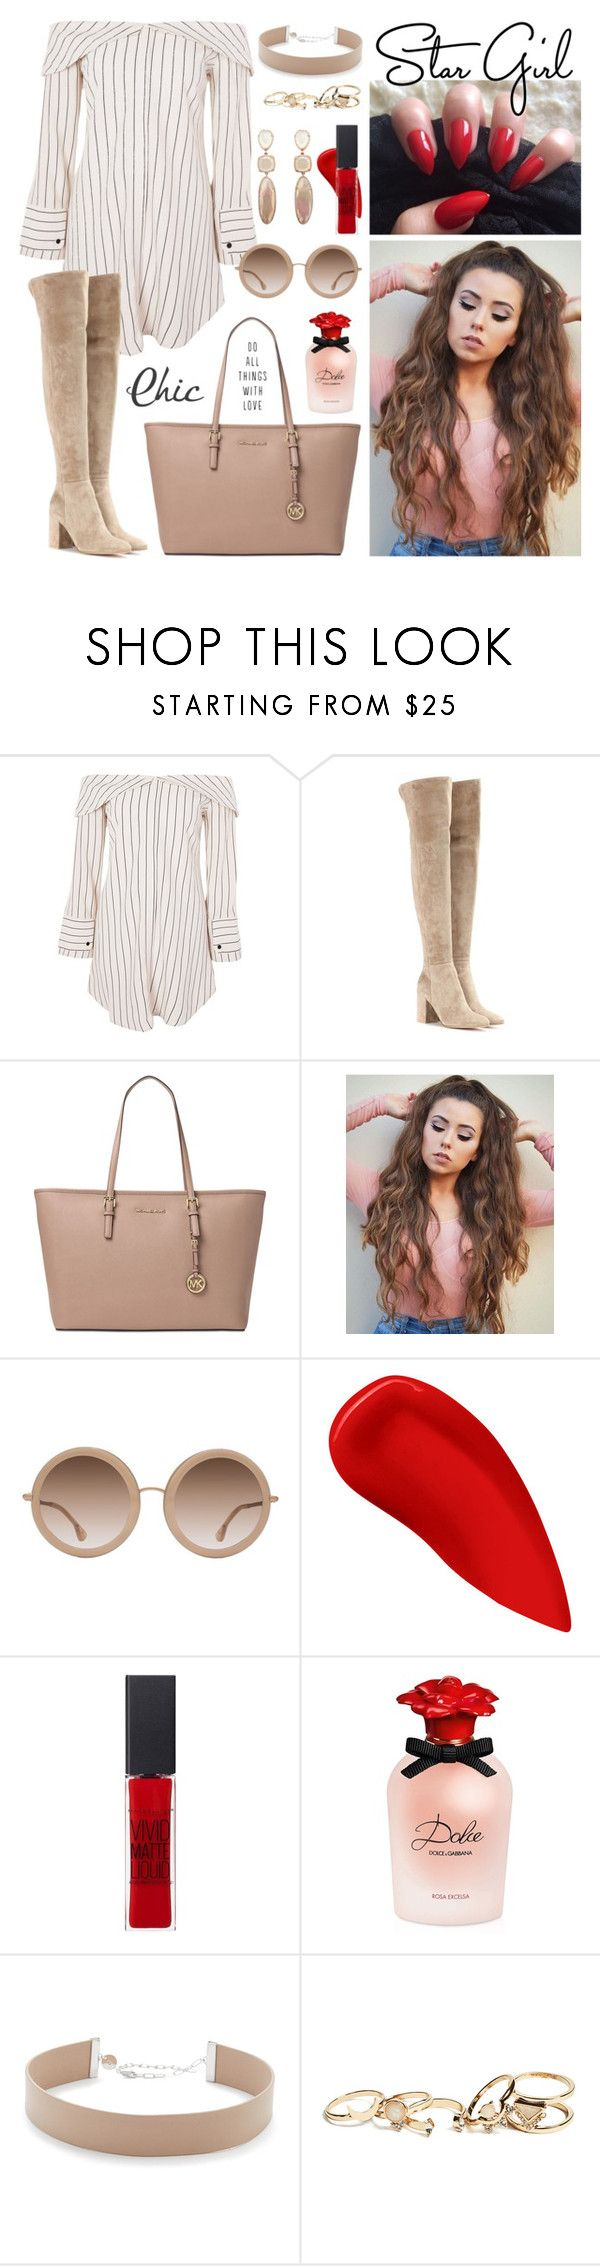 """""""shirt dress #130"""" by jk802 ❤ liked on Polyvore featuring Topshop, Gianvito Rossi, Michael Kors, Alice + Olivia, Lipstick Queen, Maybelline, Dolce&Gabbana, Jennifer Zeuner and GUESS"""